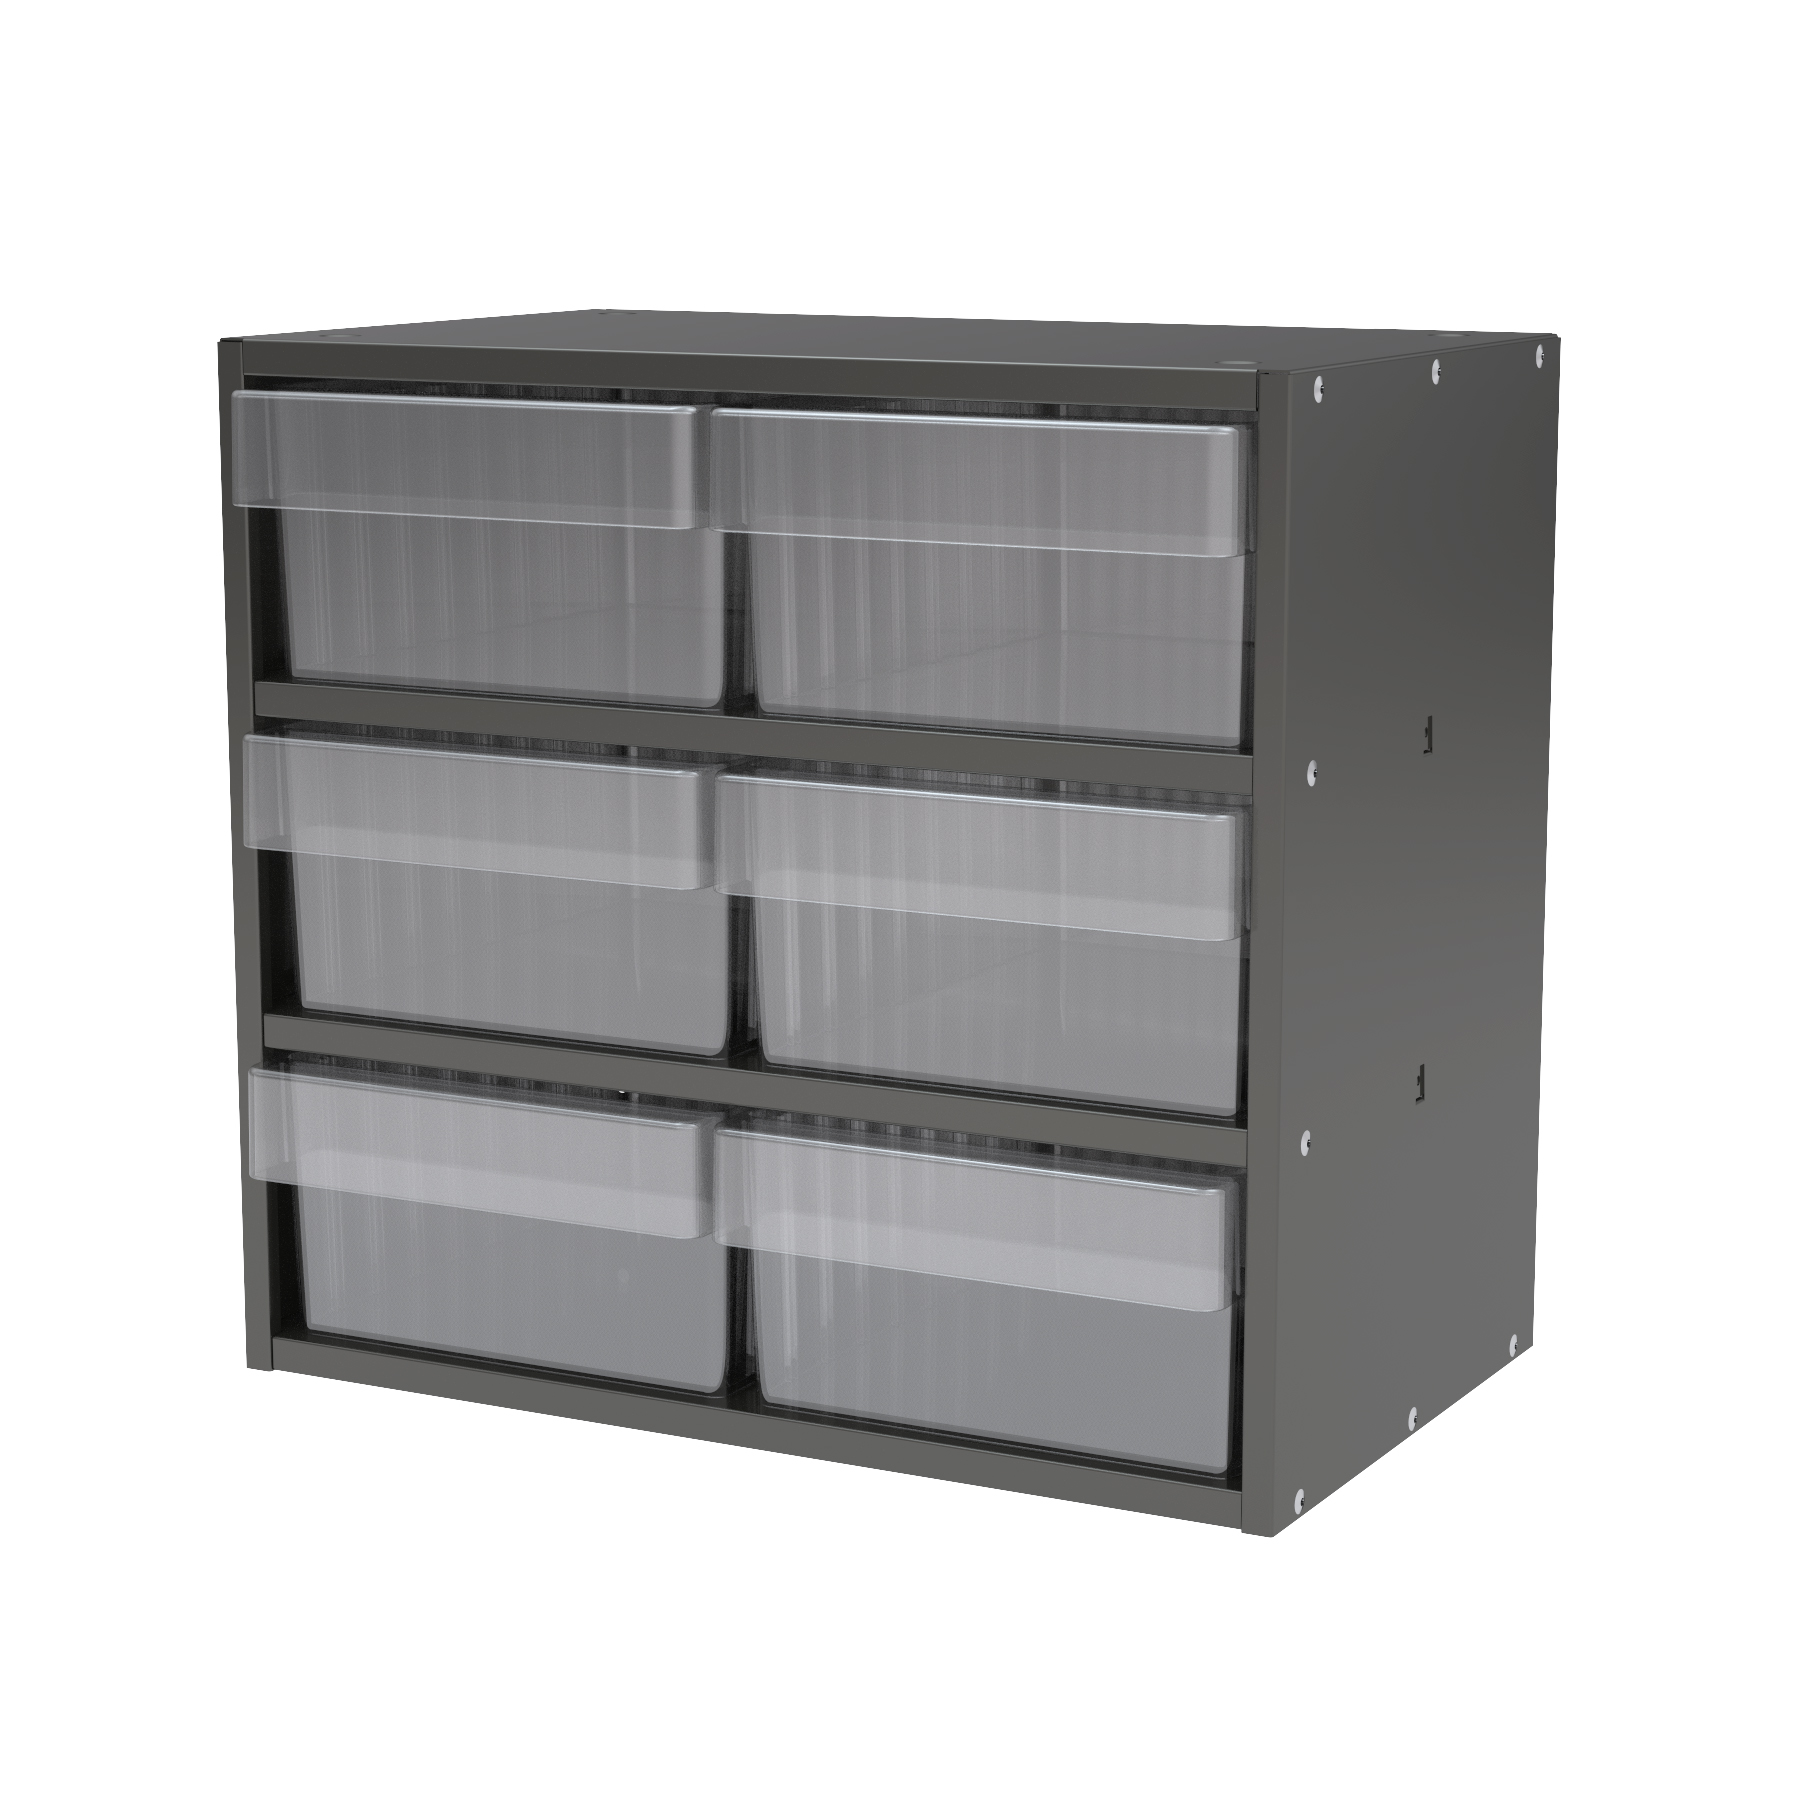 Item DISCONTINUED by Manufacturer.  Modular Cabinet, 18x11x16, 6 Drawers, Gray/Clear (AD1811C82CRY).  This item sold in carton quantities of 1.